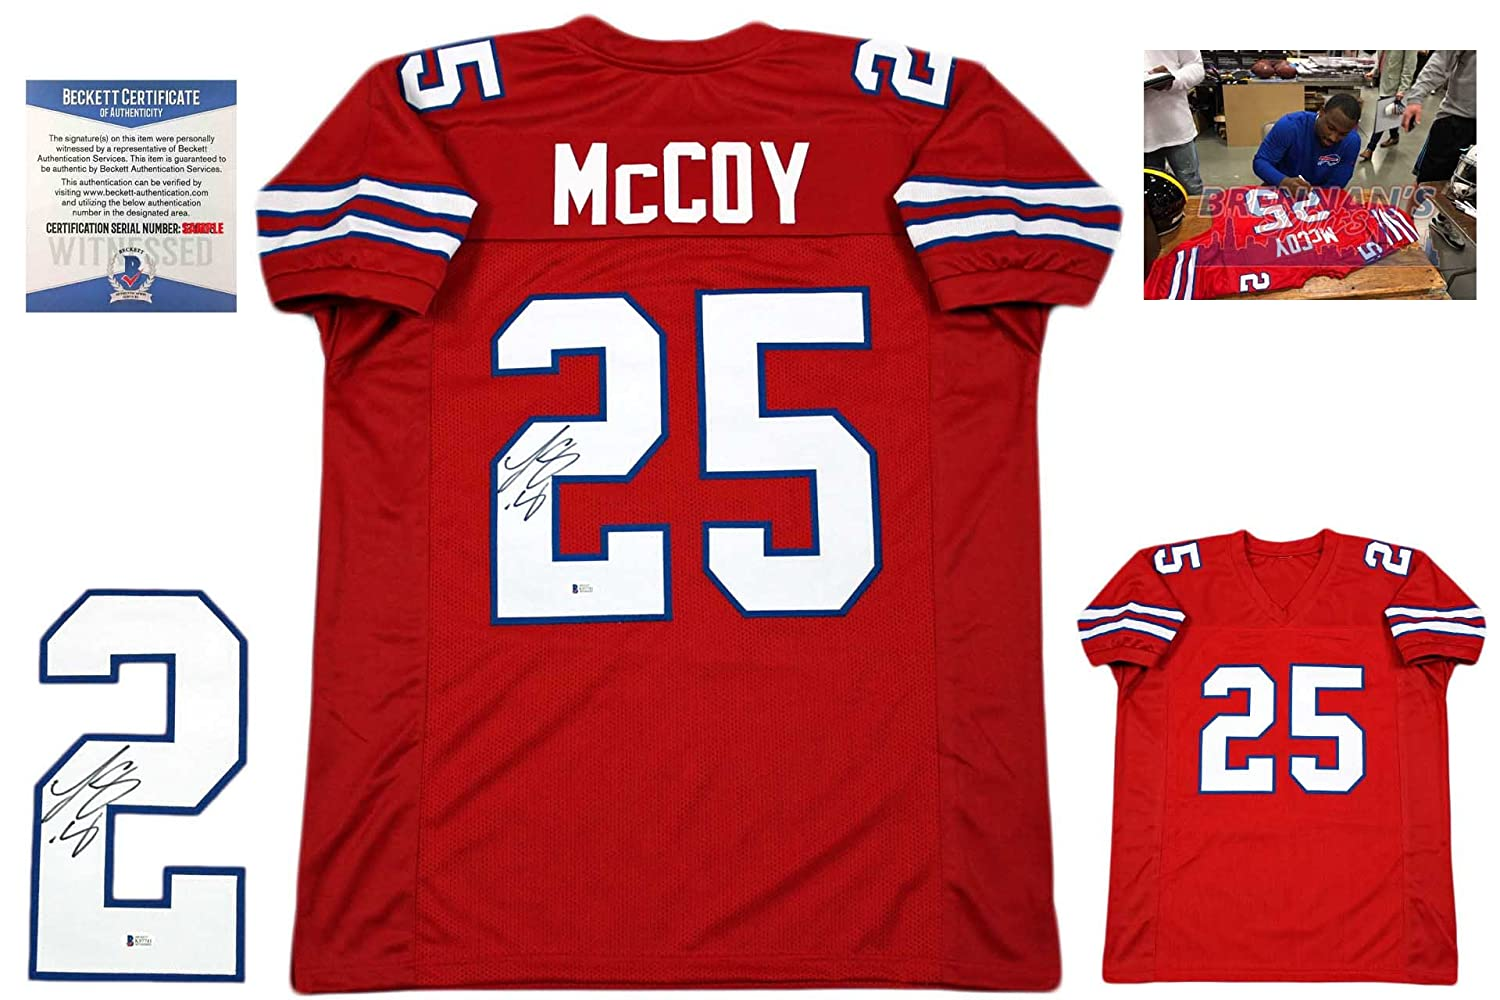 sale retailer 89cf7 f41bc LeSean McCoy Autographed SIGNED Jersey - Beckett Authentic ...